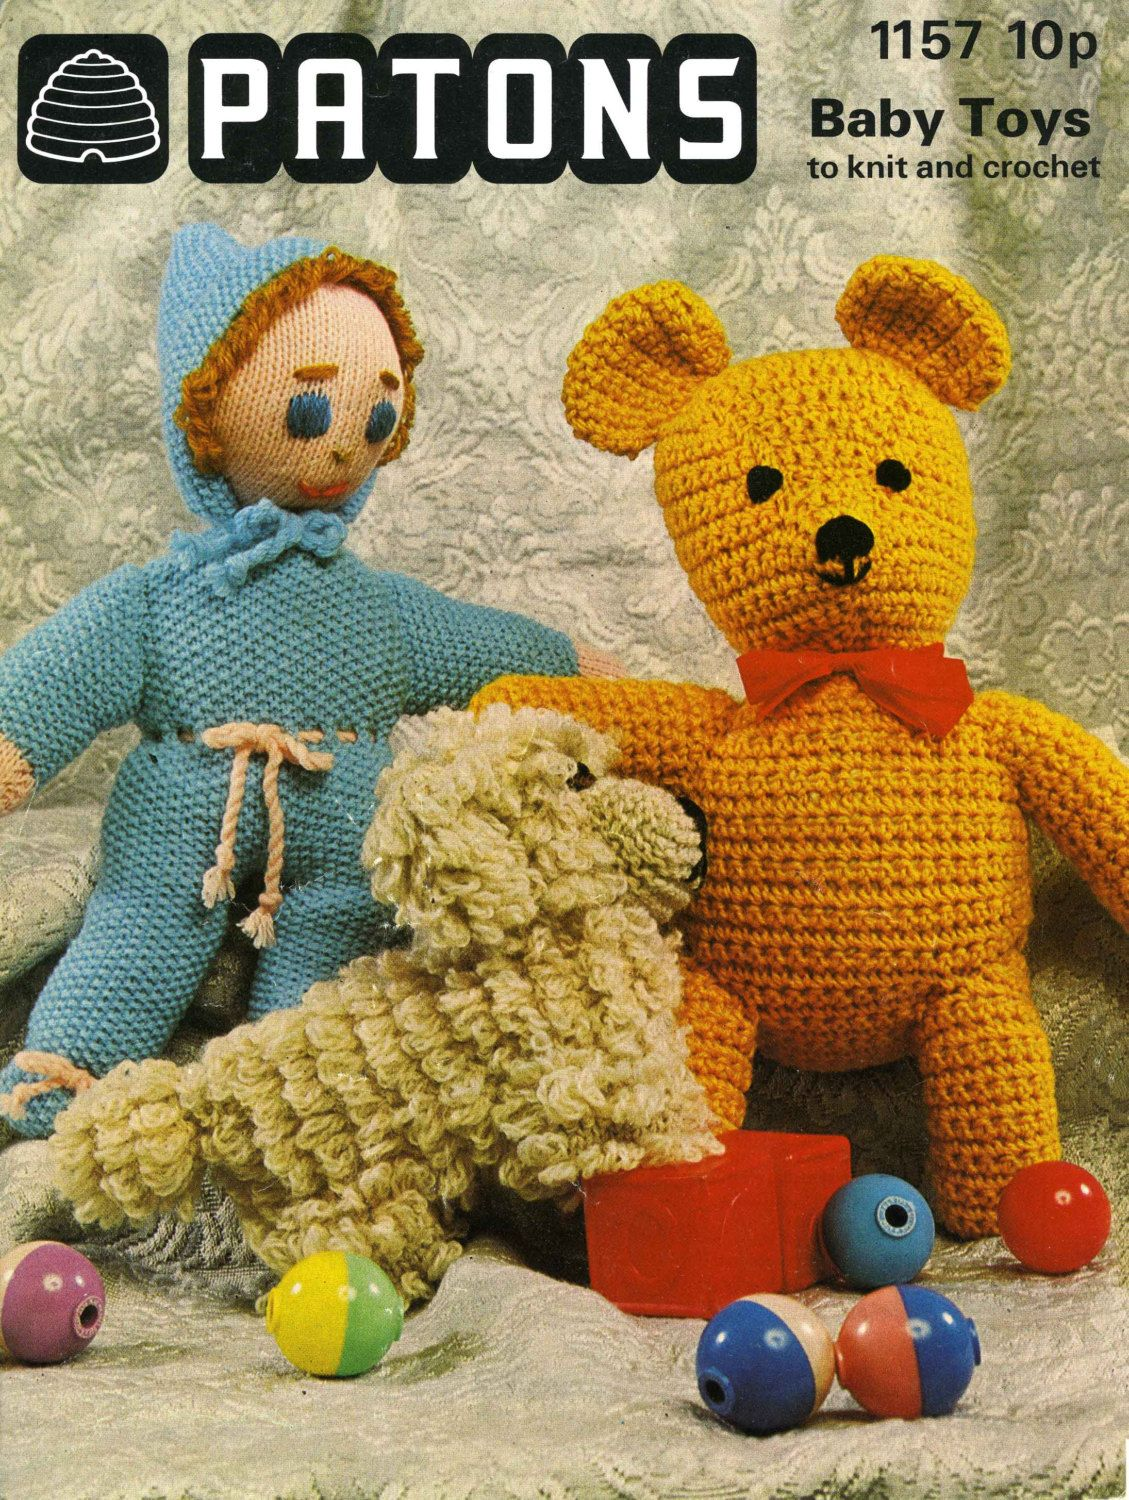 Vintage knitted toys teddy bear doll puppyknitting pattern vintage knitted toys teddy bear doll puppyknitting pattern 1960 bankloansurffo Image collections